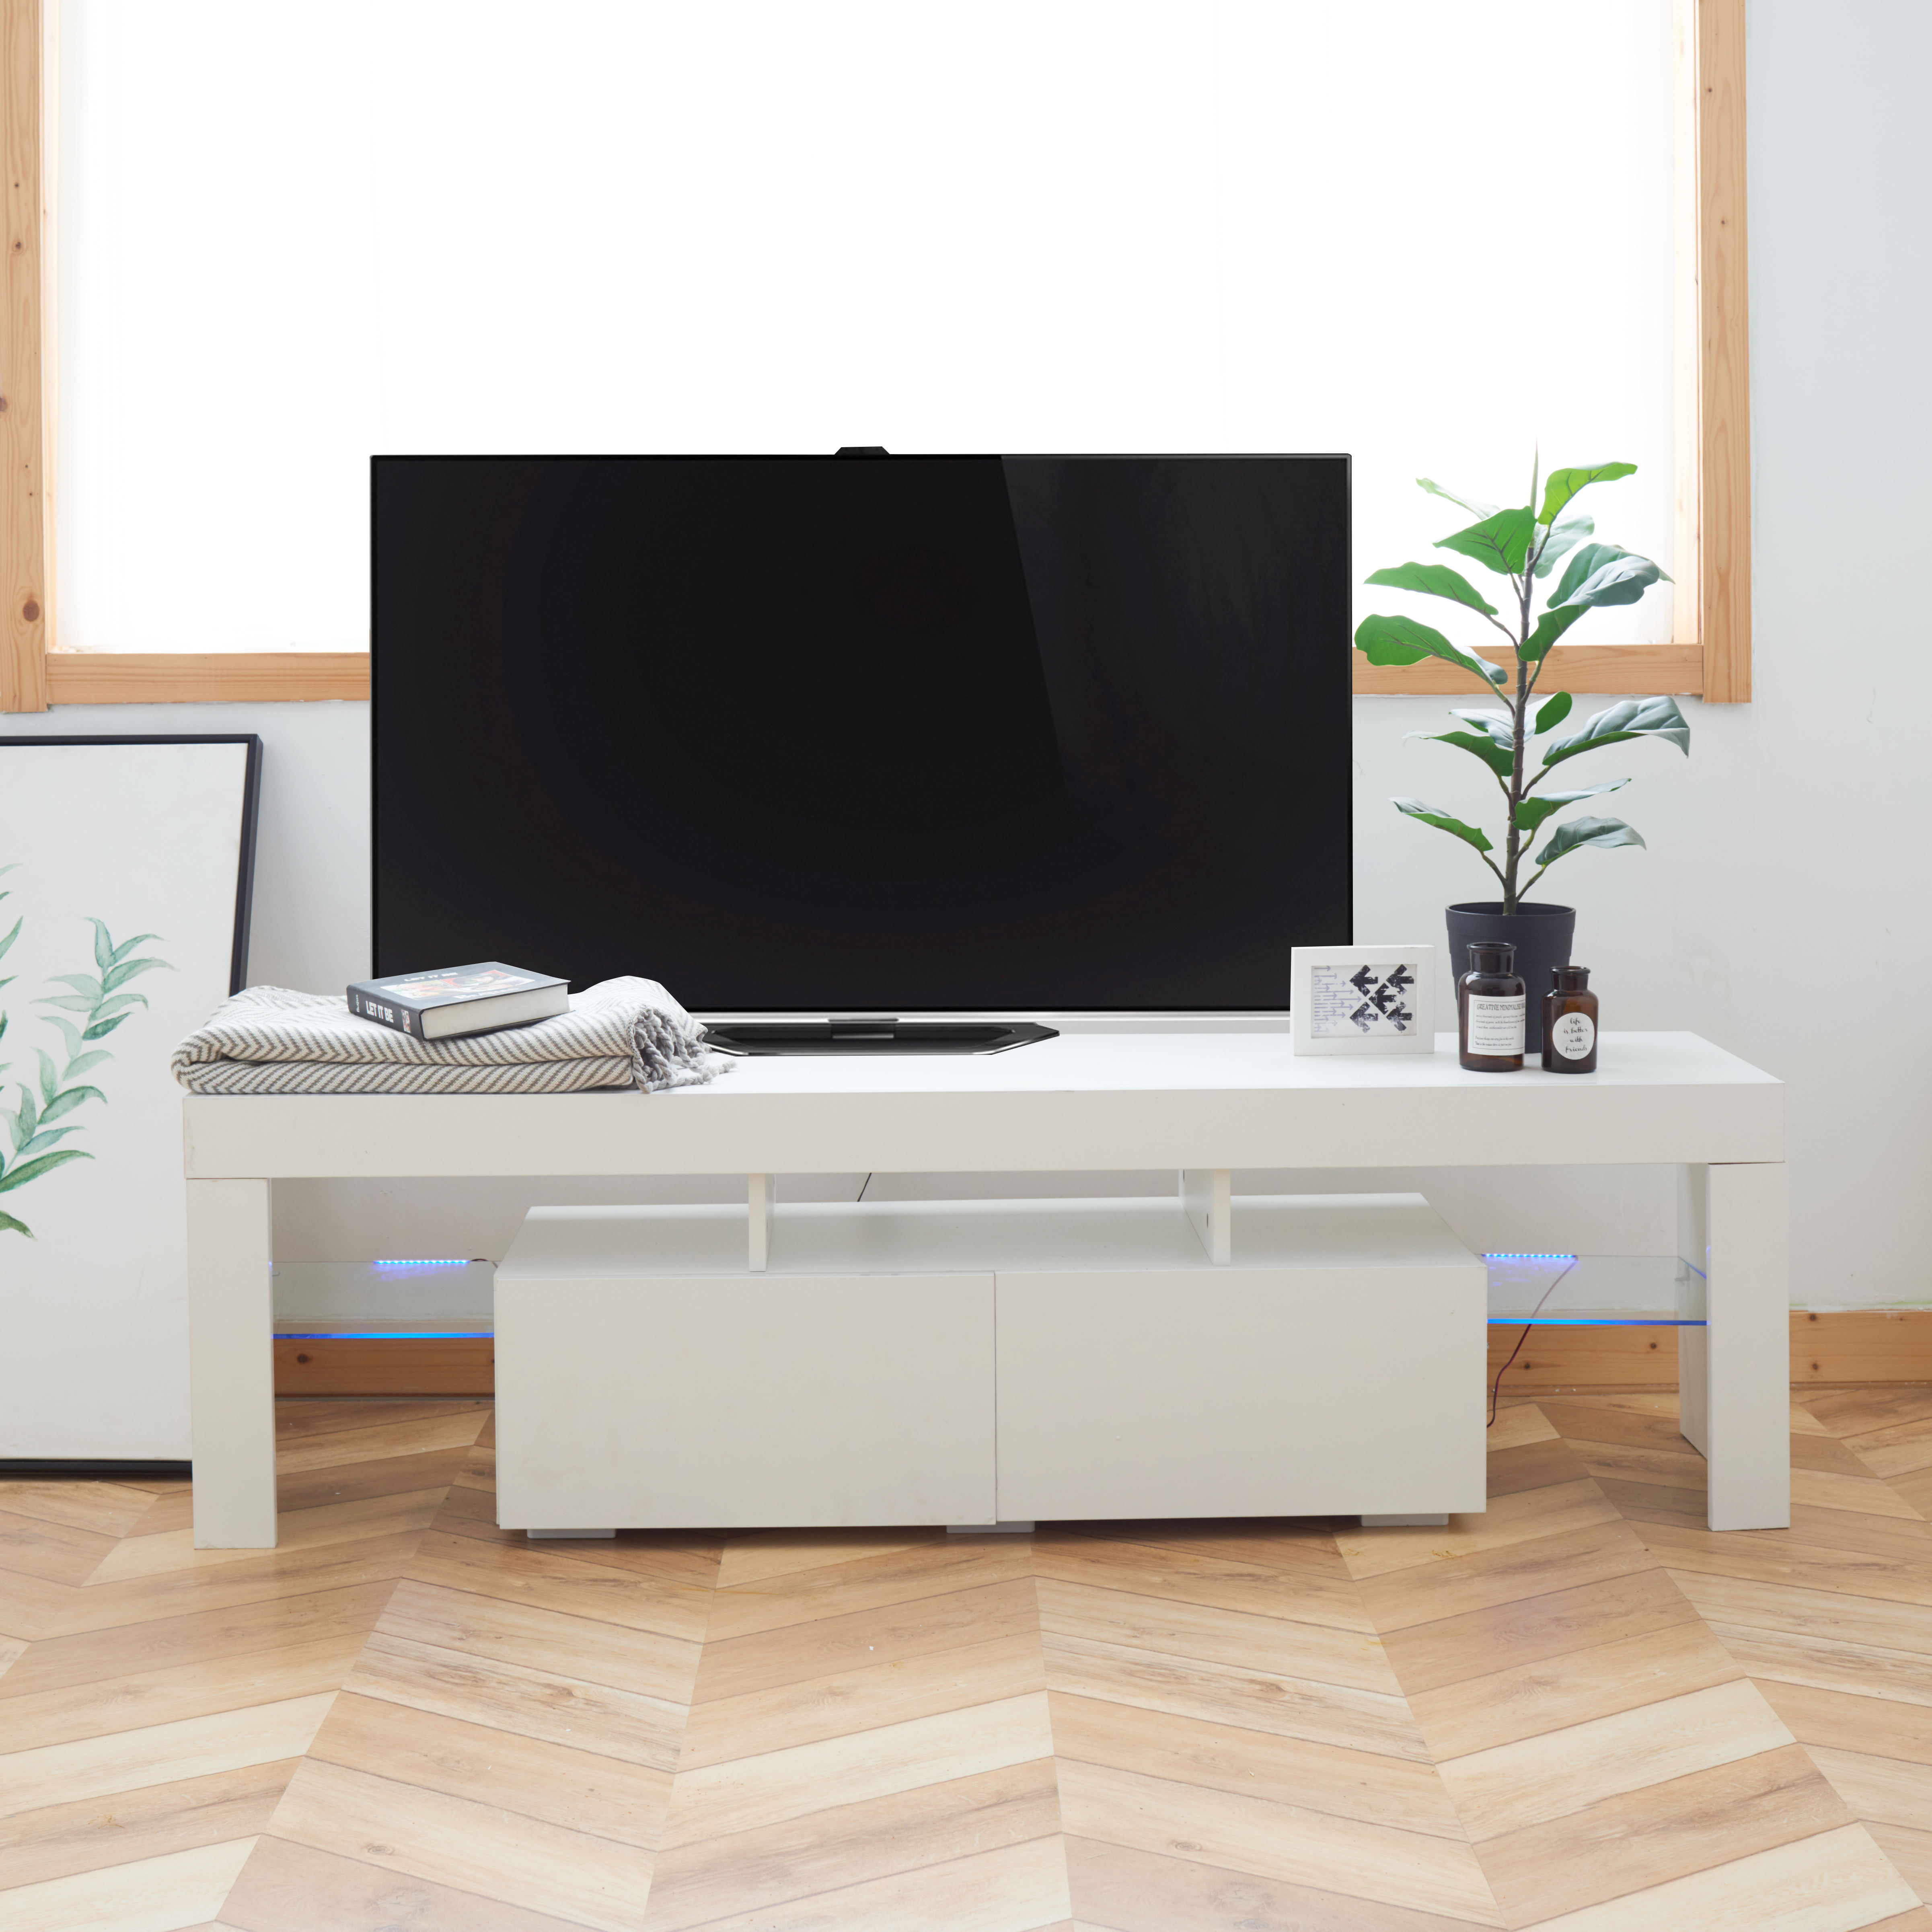 New style living room bedroom modern simple furniture mdf wooden tv cabinet Featured Image